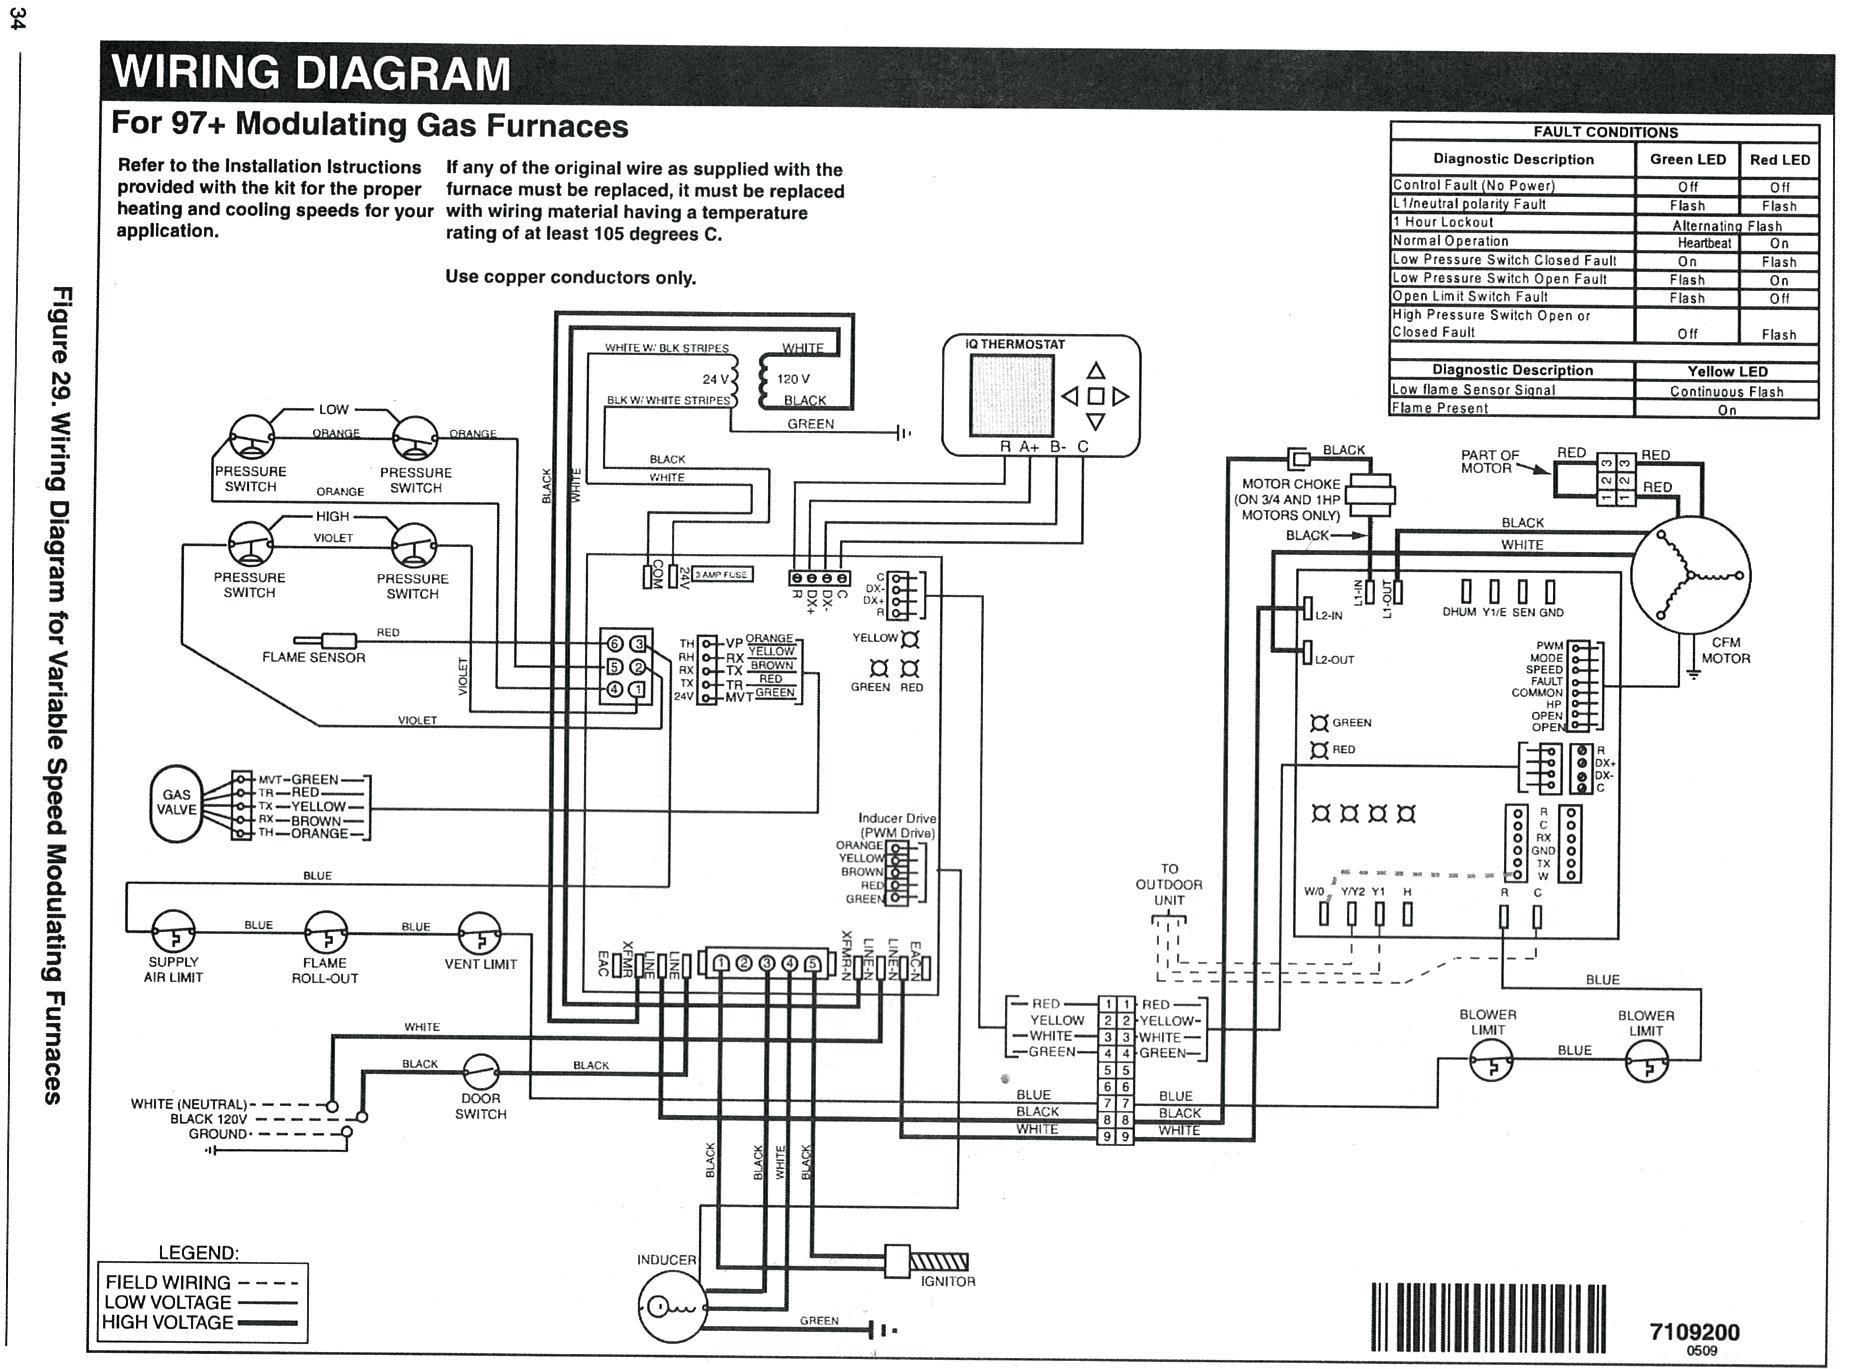 newair g73 wiring diagram Collection-Newair G73 Wiring Diagram Natebird Me Lovely 8-k